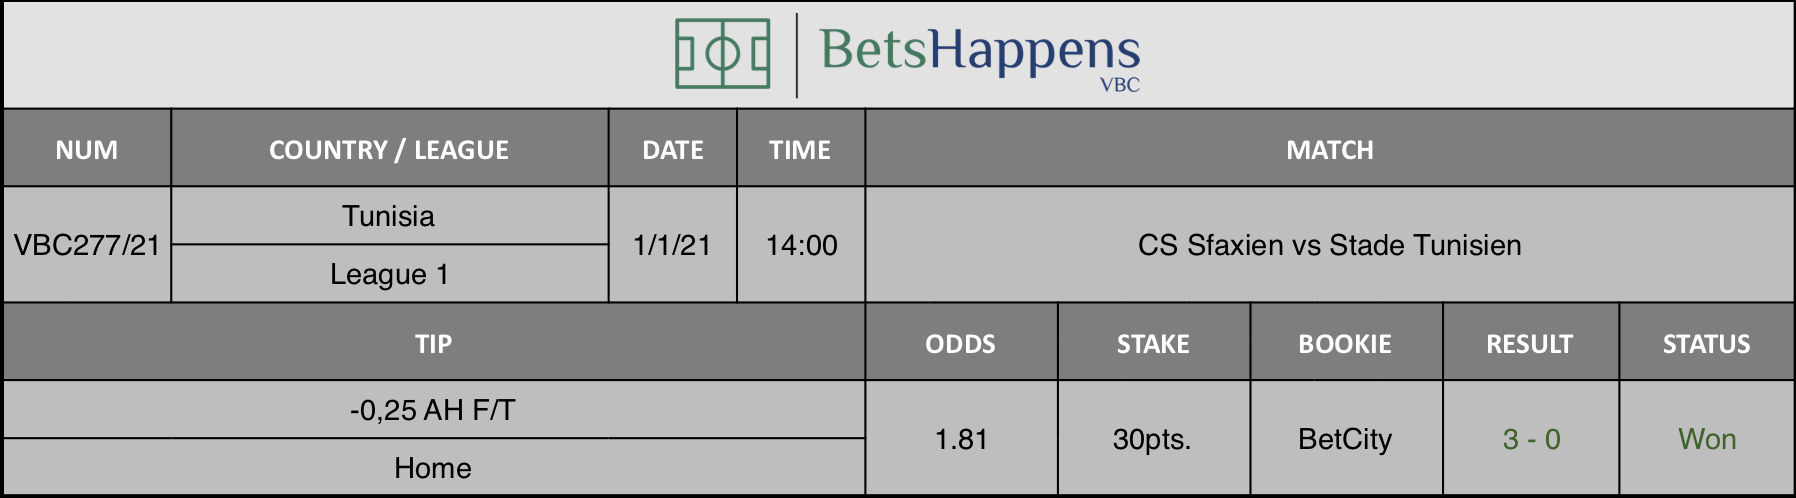 Results of our tip for the CS Sfaxien vs Stade Tunisien match where -0,25 AH F/T Home is recommended.